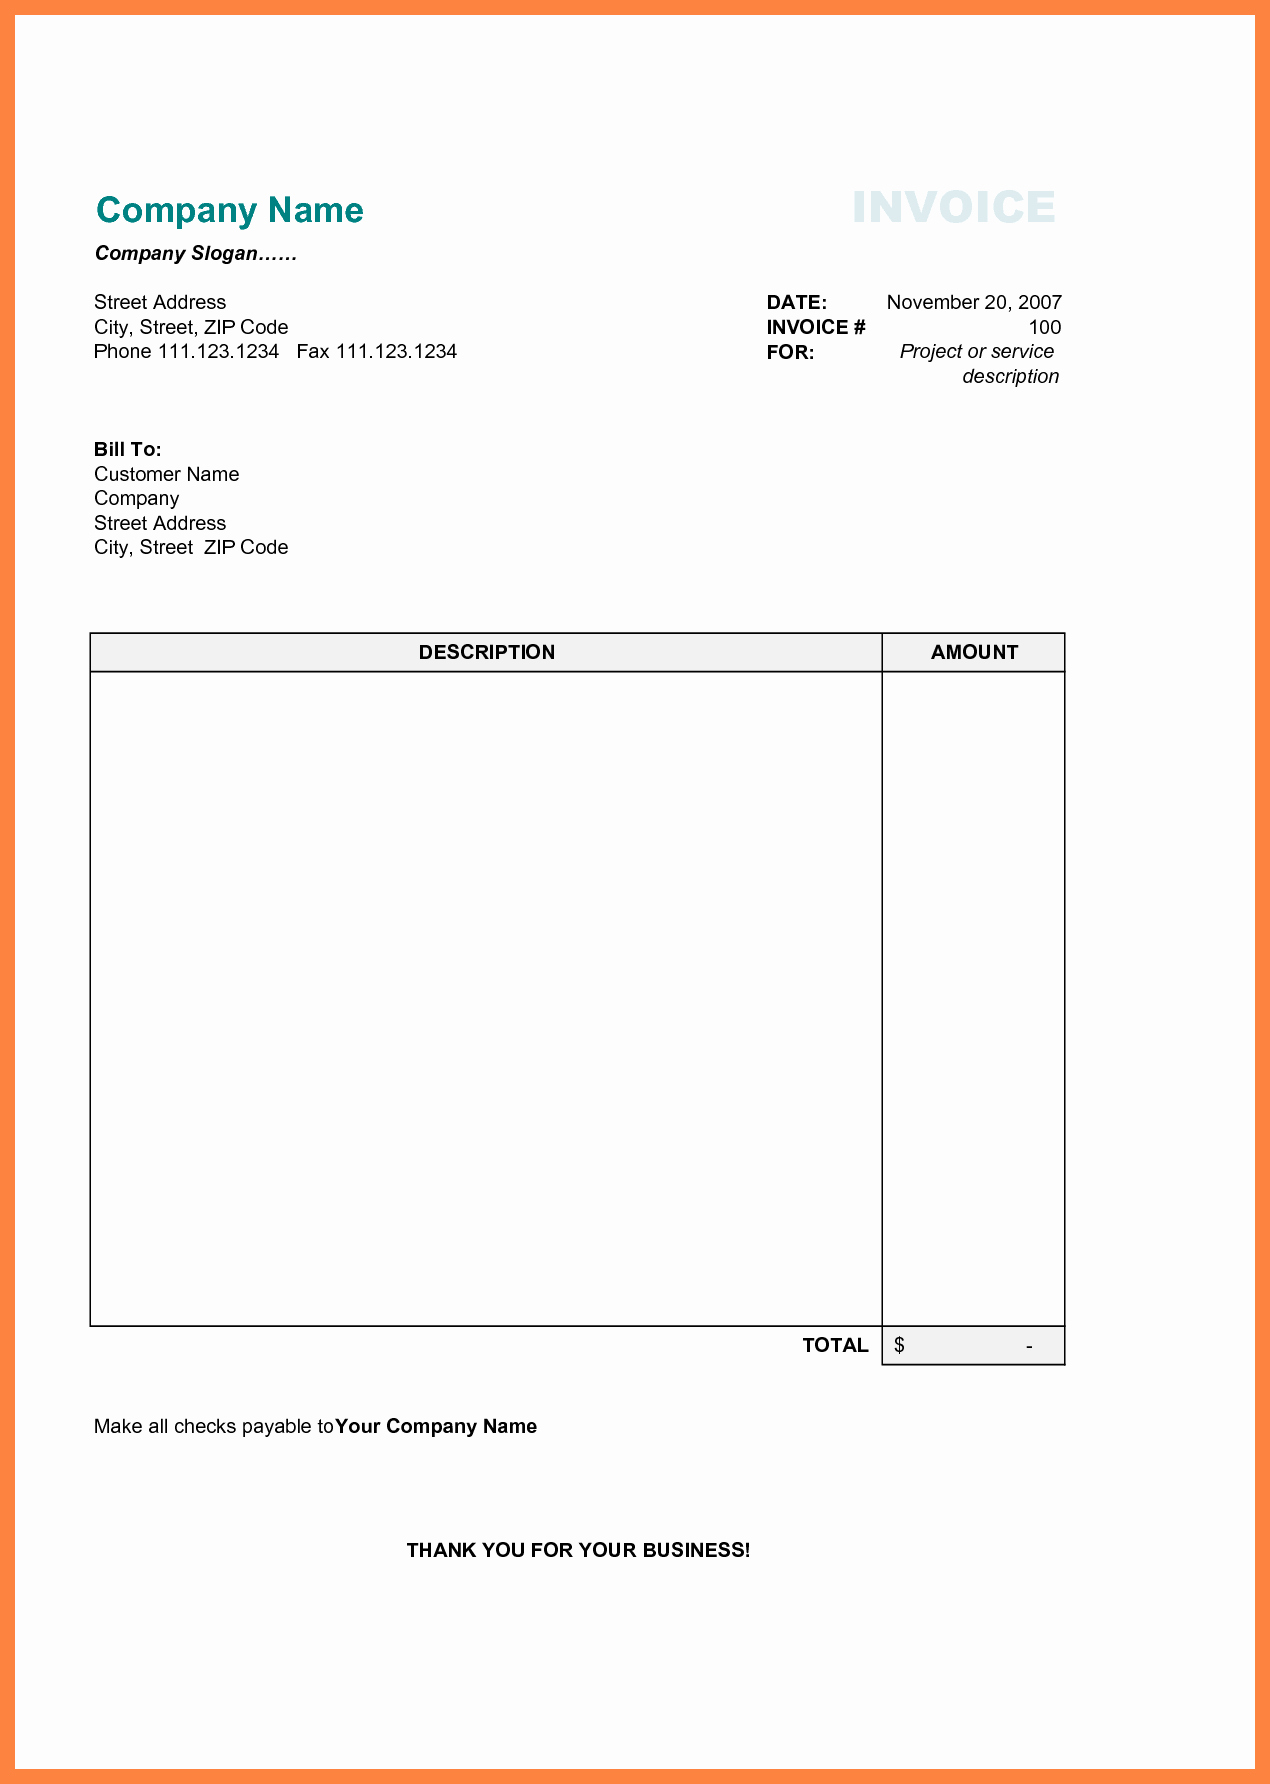 Free Invoice Template Microsoft Word New Free Printable Business Invoice Template Invoice format